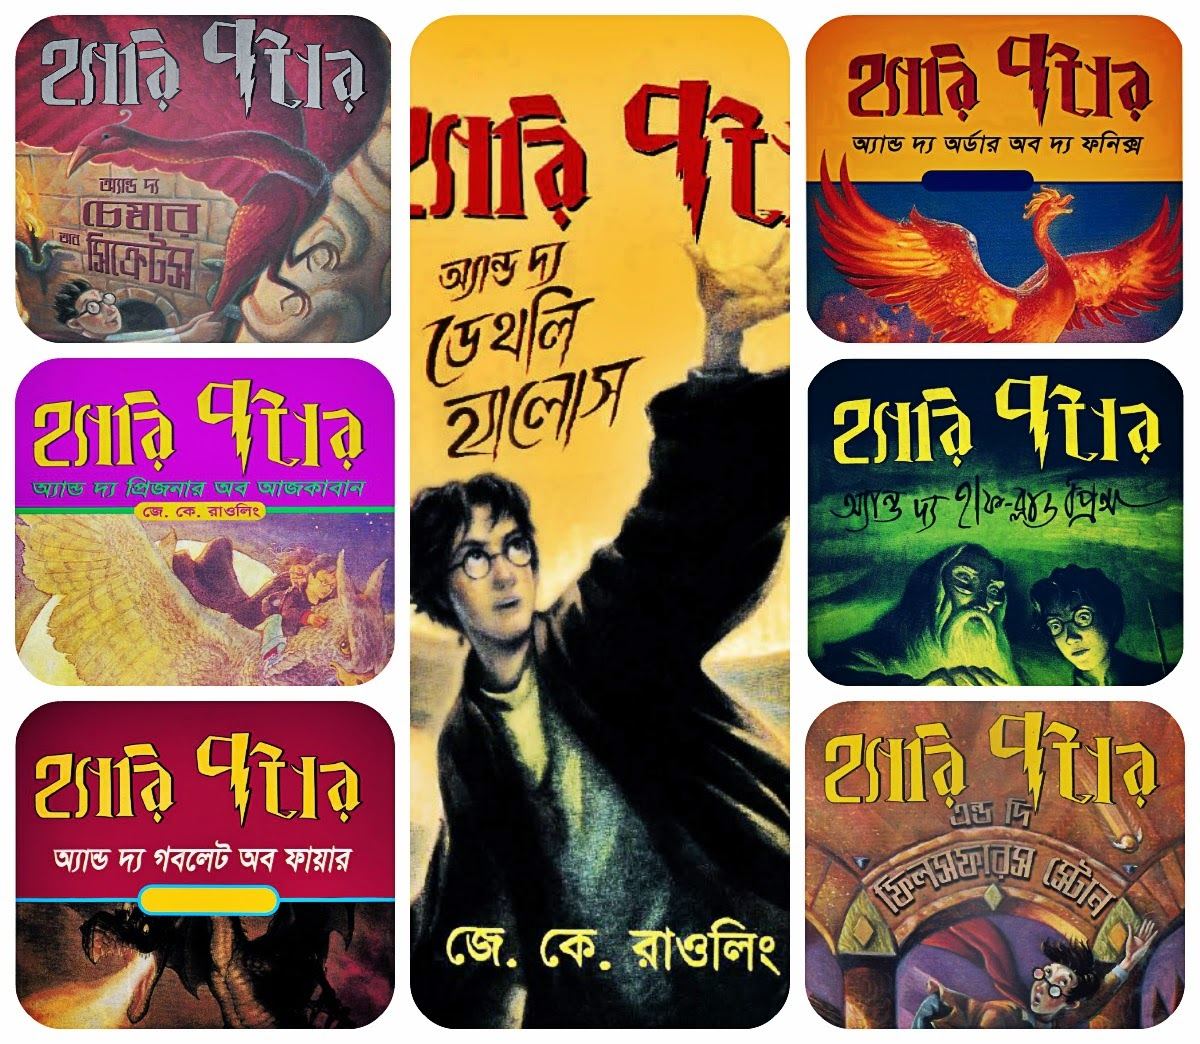 Harry Potter Book In Pdf Format Free Download : Harry potter series all e books bengali